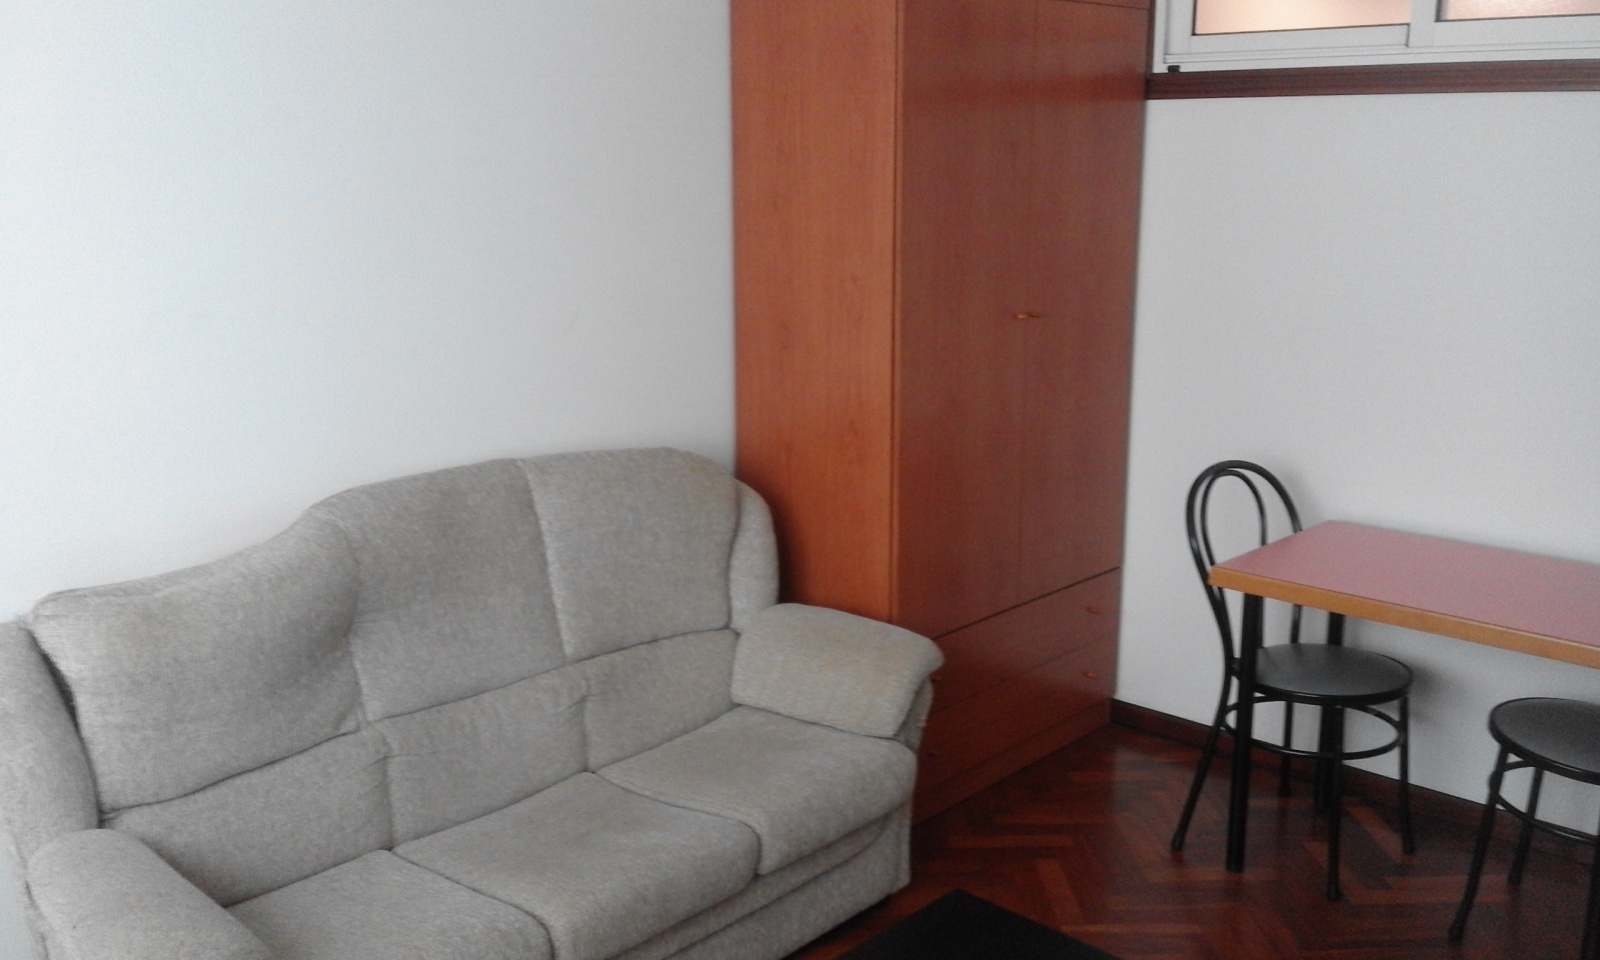 Appartement Location à A Coruña